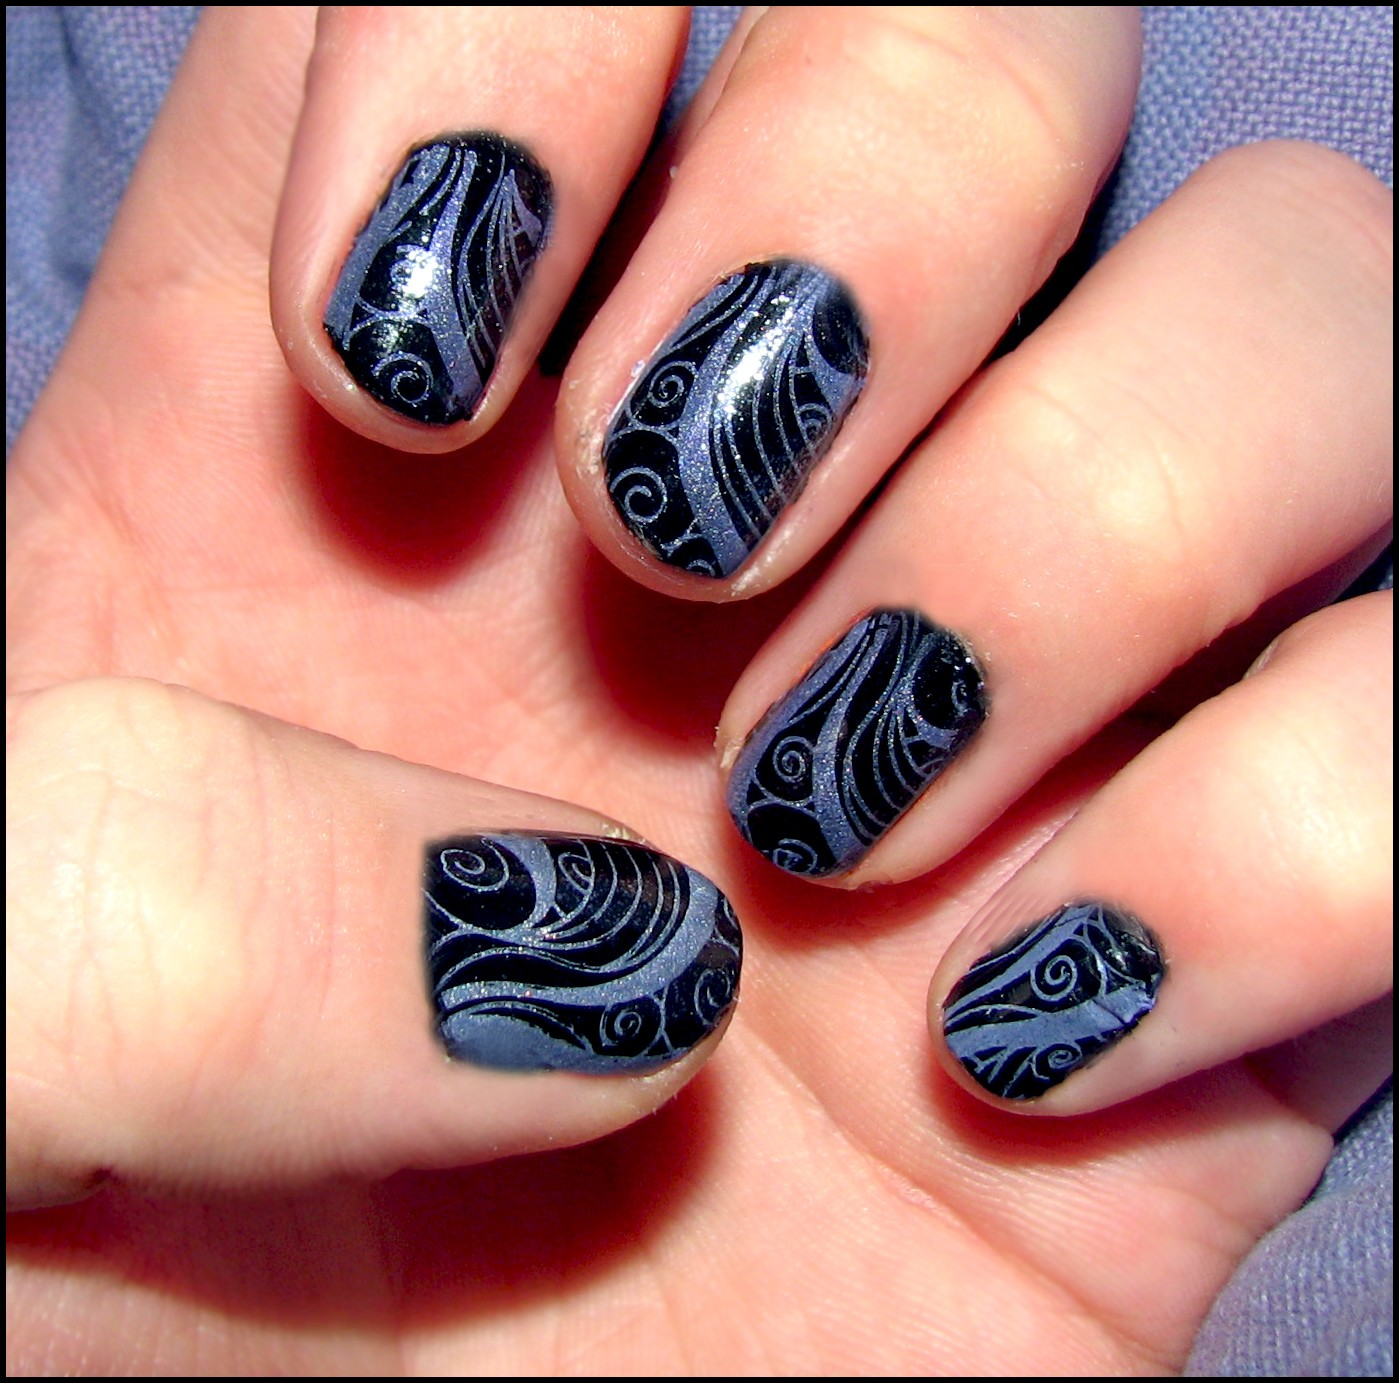 2014 Nail Art Ideas For Prom: 2014 Nail Art Ideas For Prom